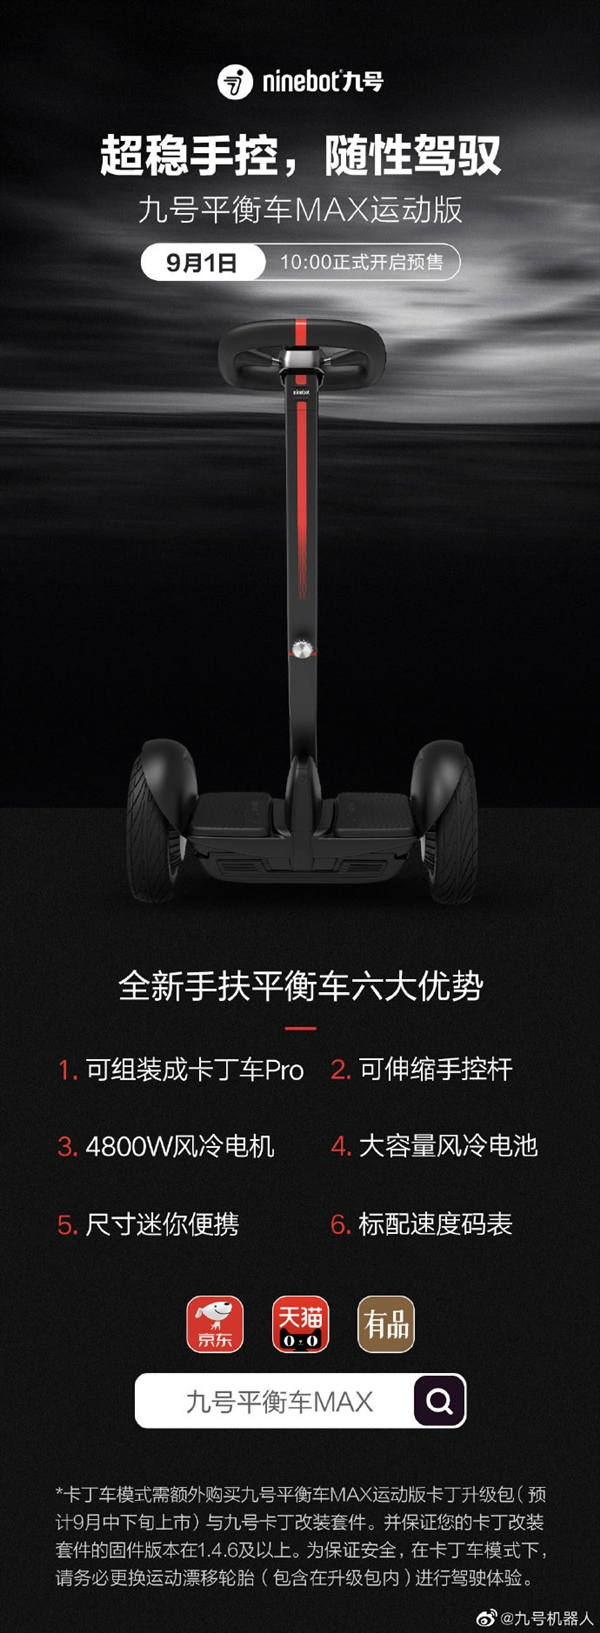 No. 9 balance scooter Max sports version